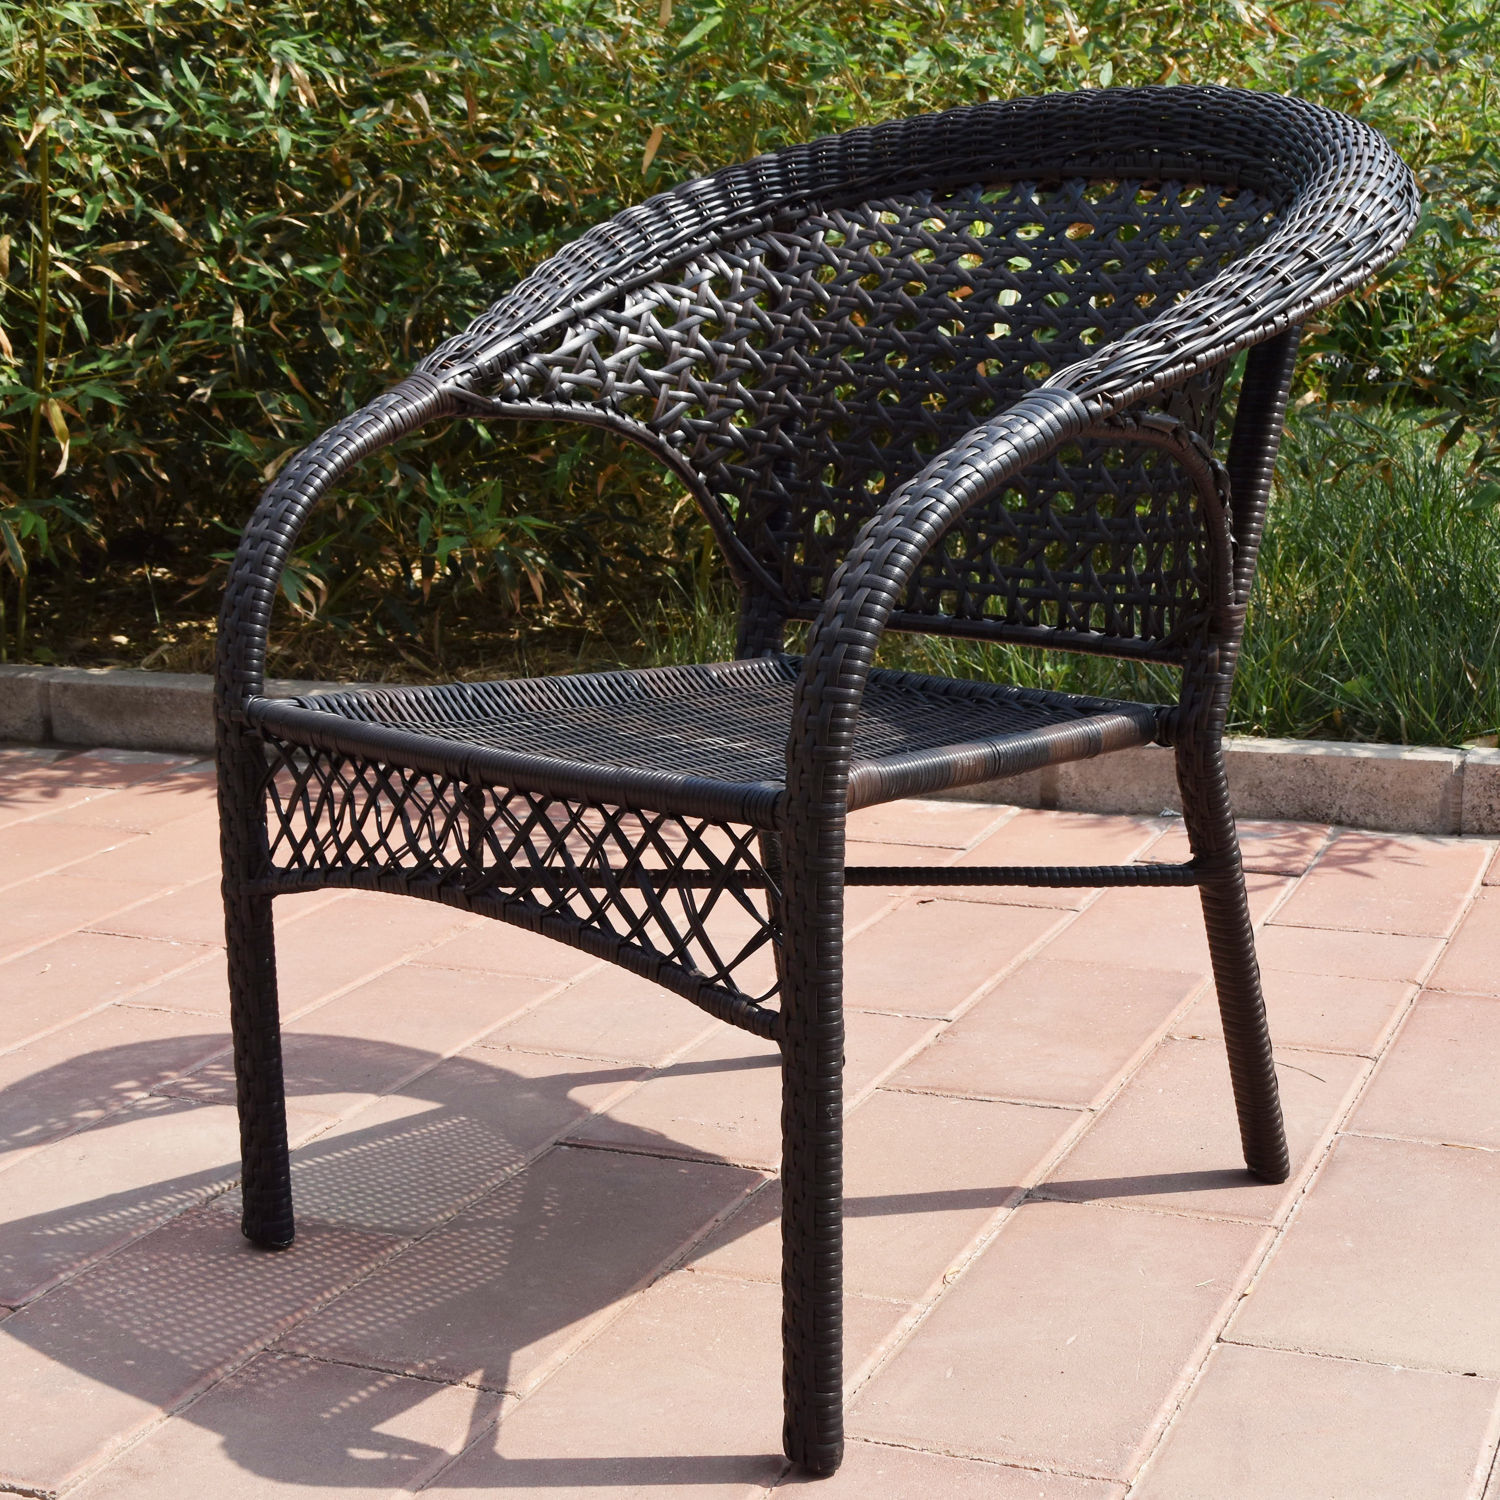 Adeco Brown Wicker Patio Furniture Dinning Set Dinning Chair Only Hammocks